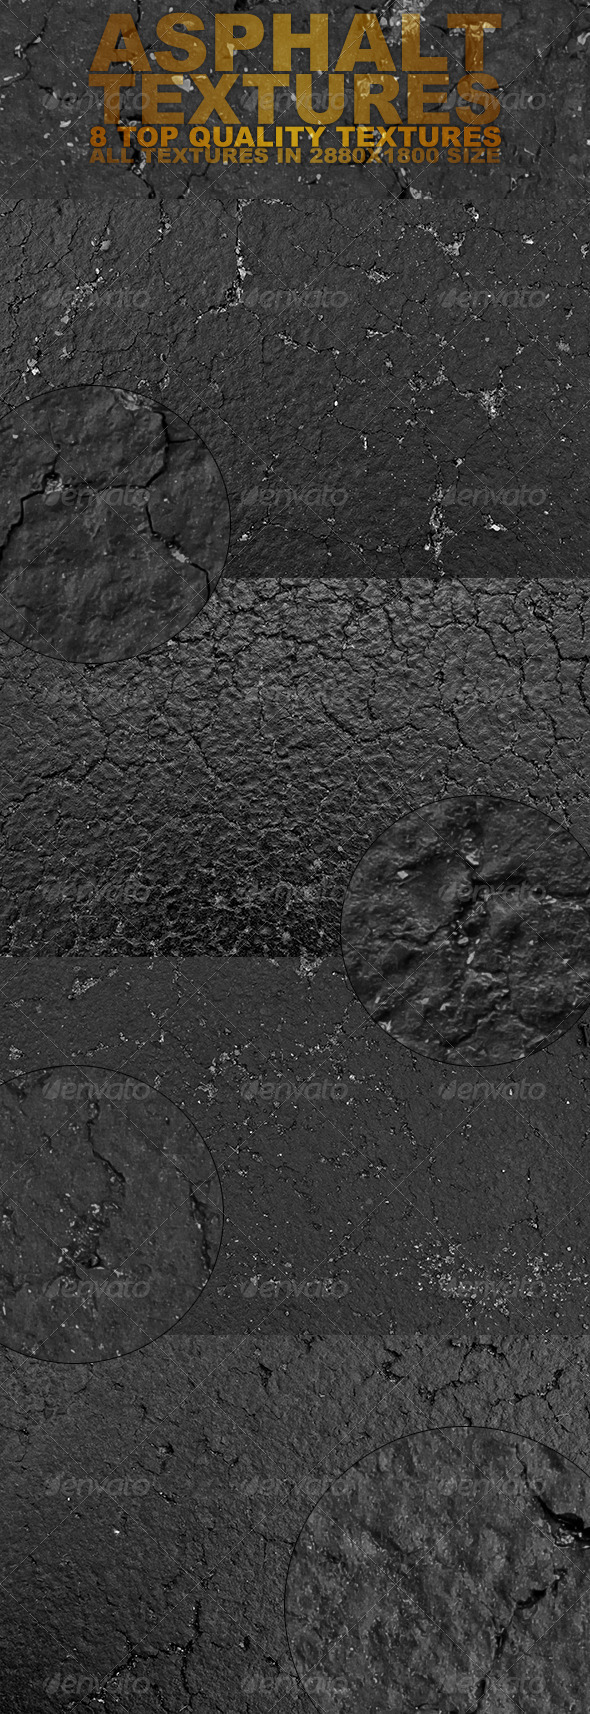 Black Asphalt Textures - Industrial / Grunge Textures